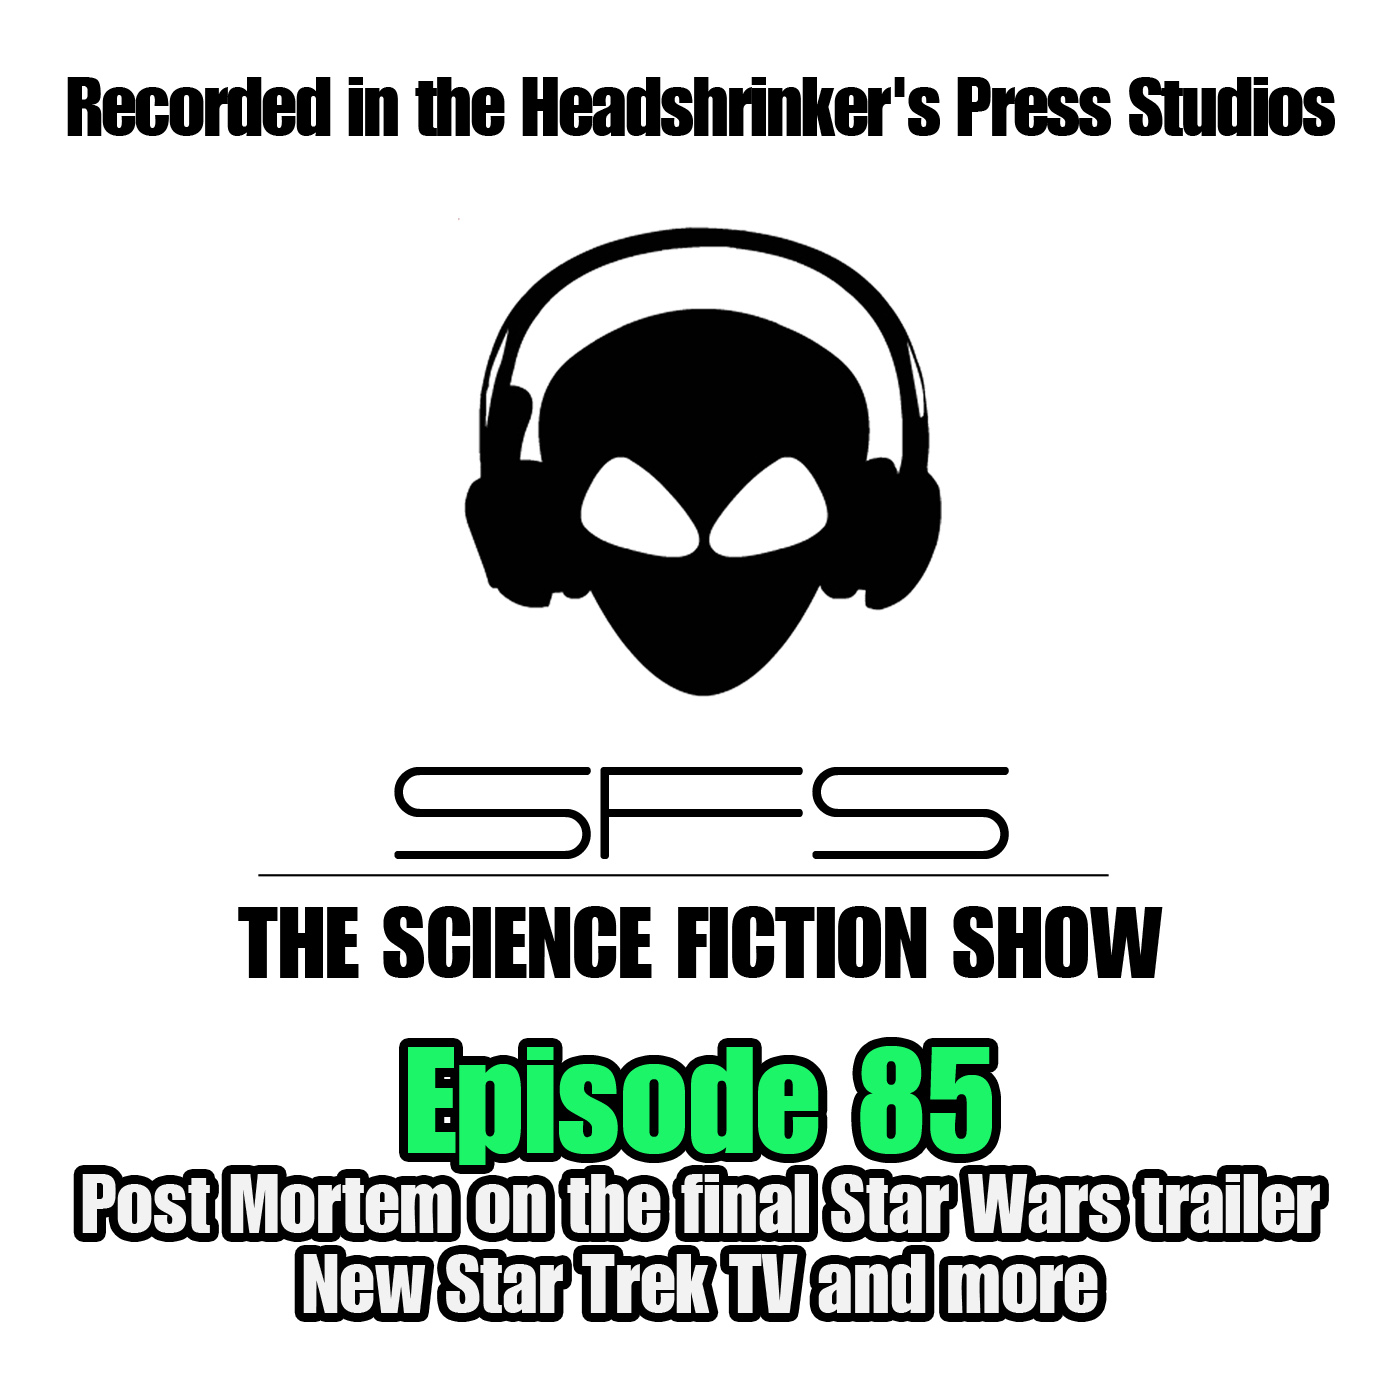 Episode 85: Star Wars Trailer Wrapup and Speculation, More!